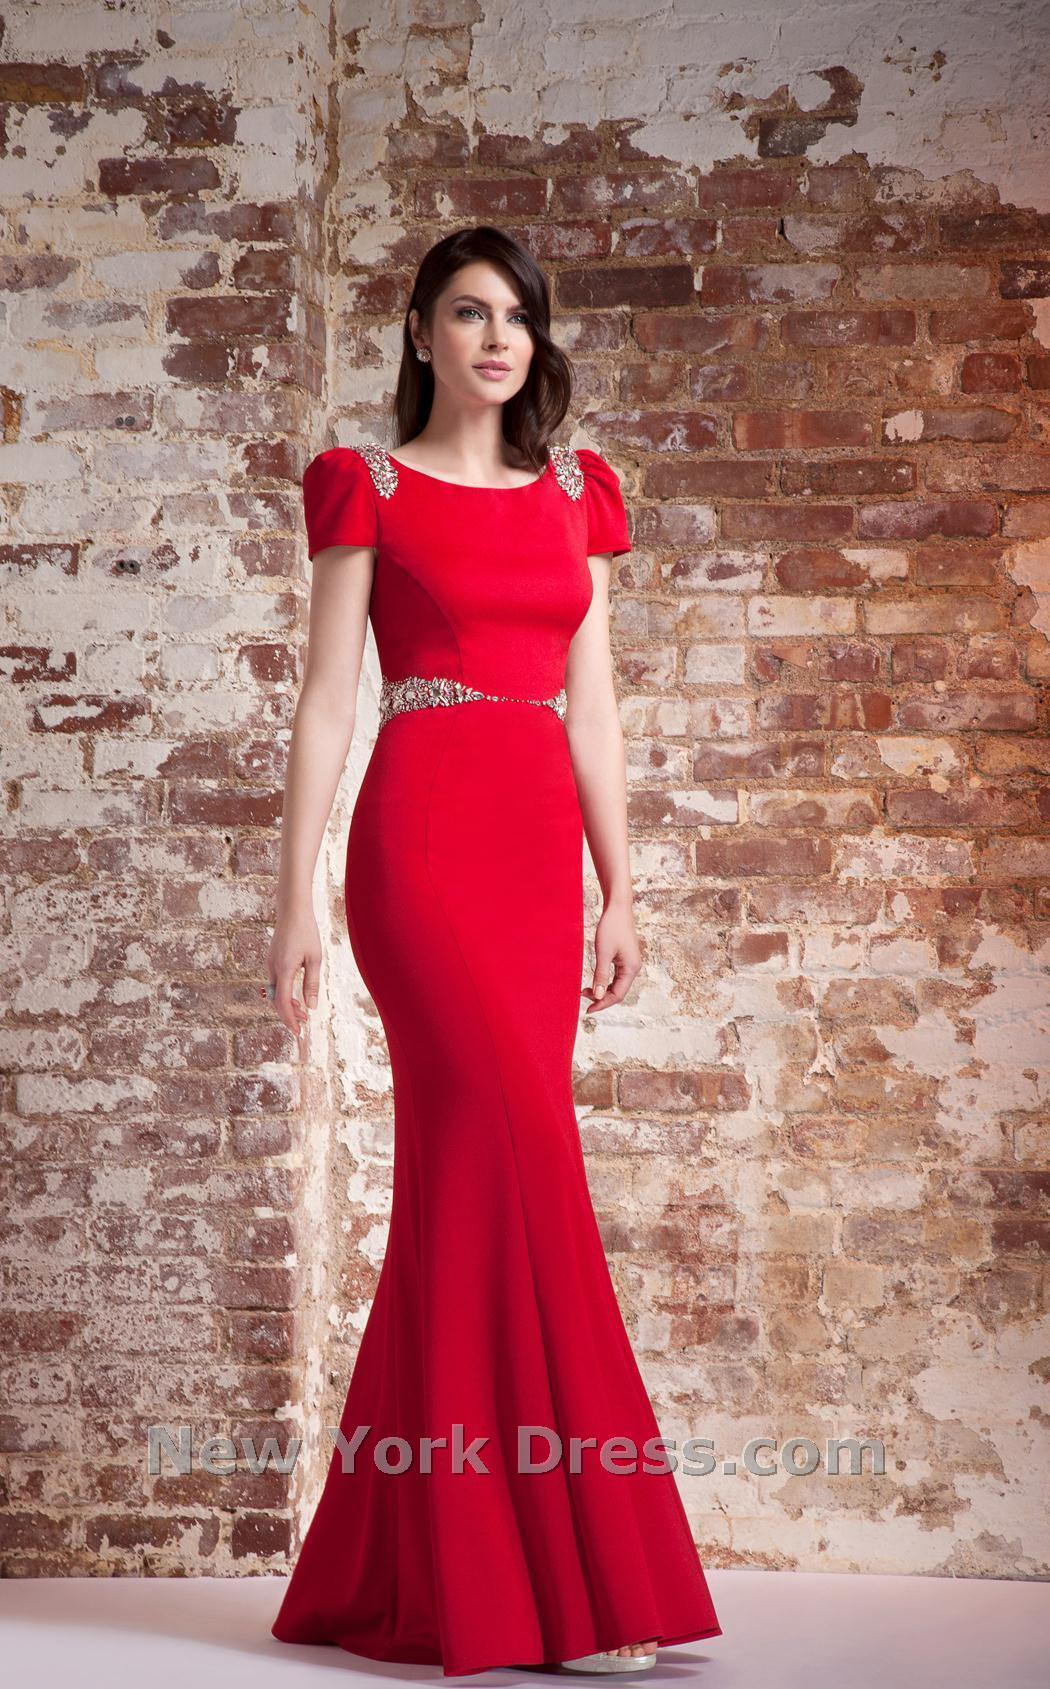 New York Dresses Evening Dresses